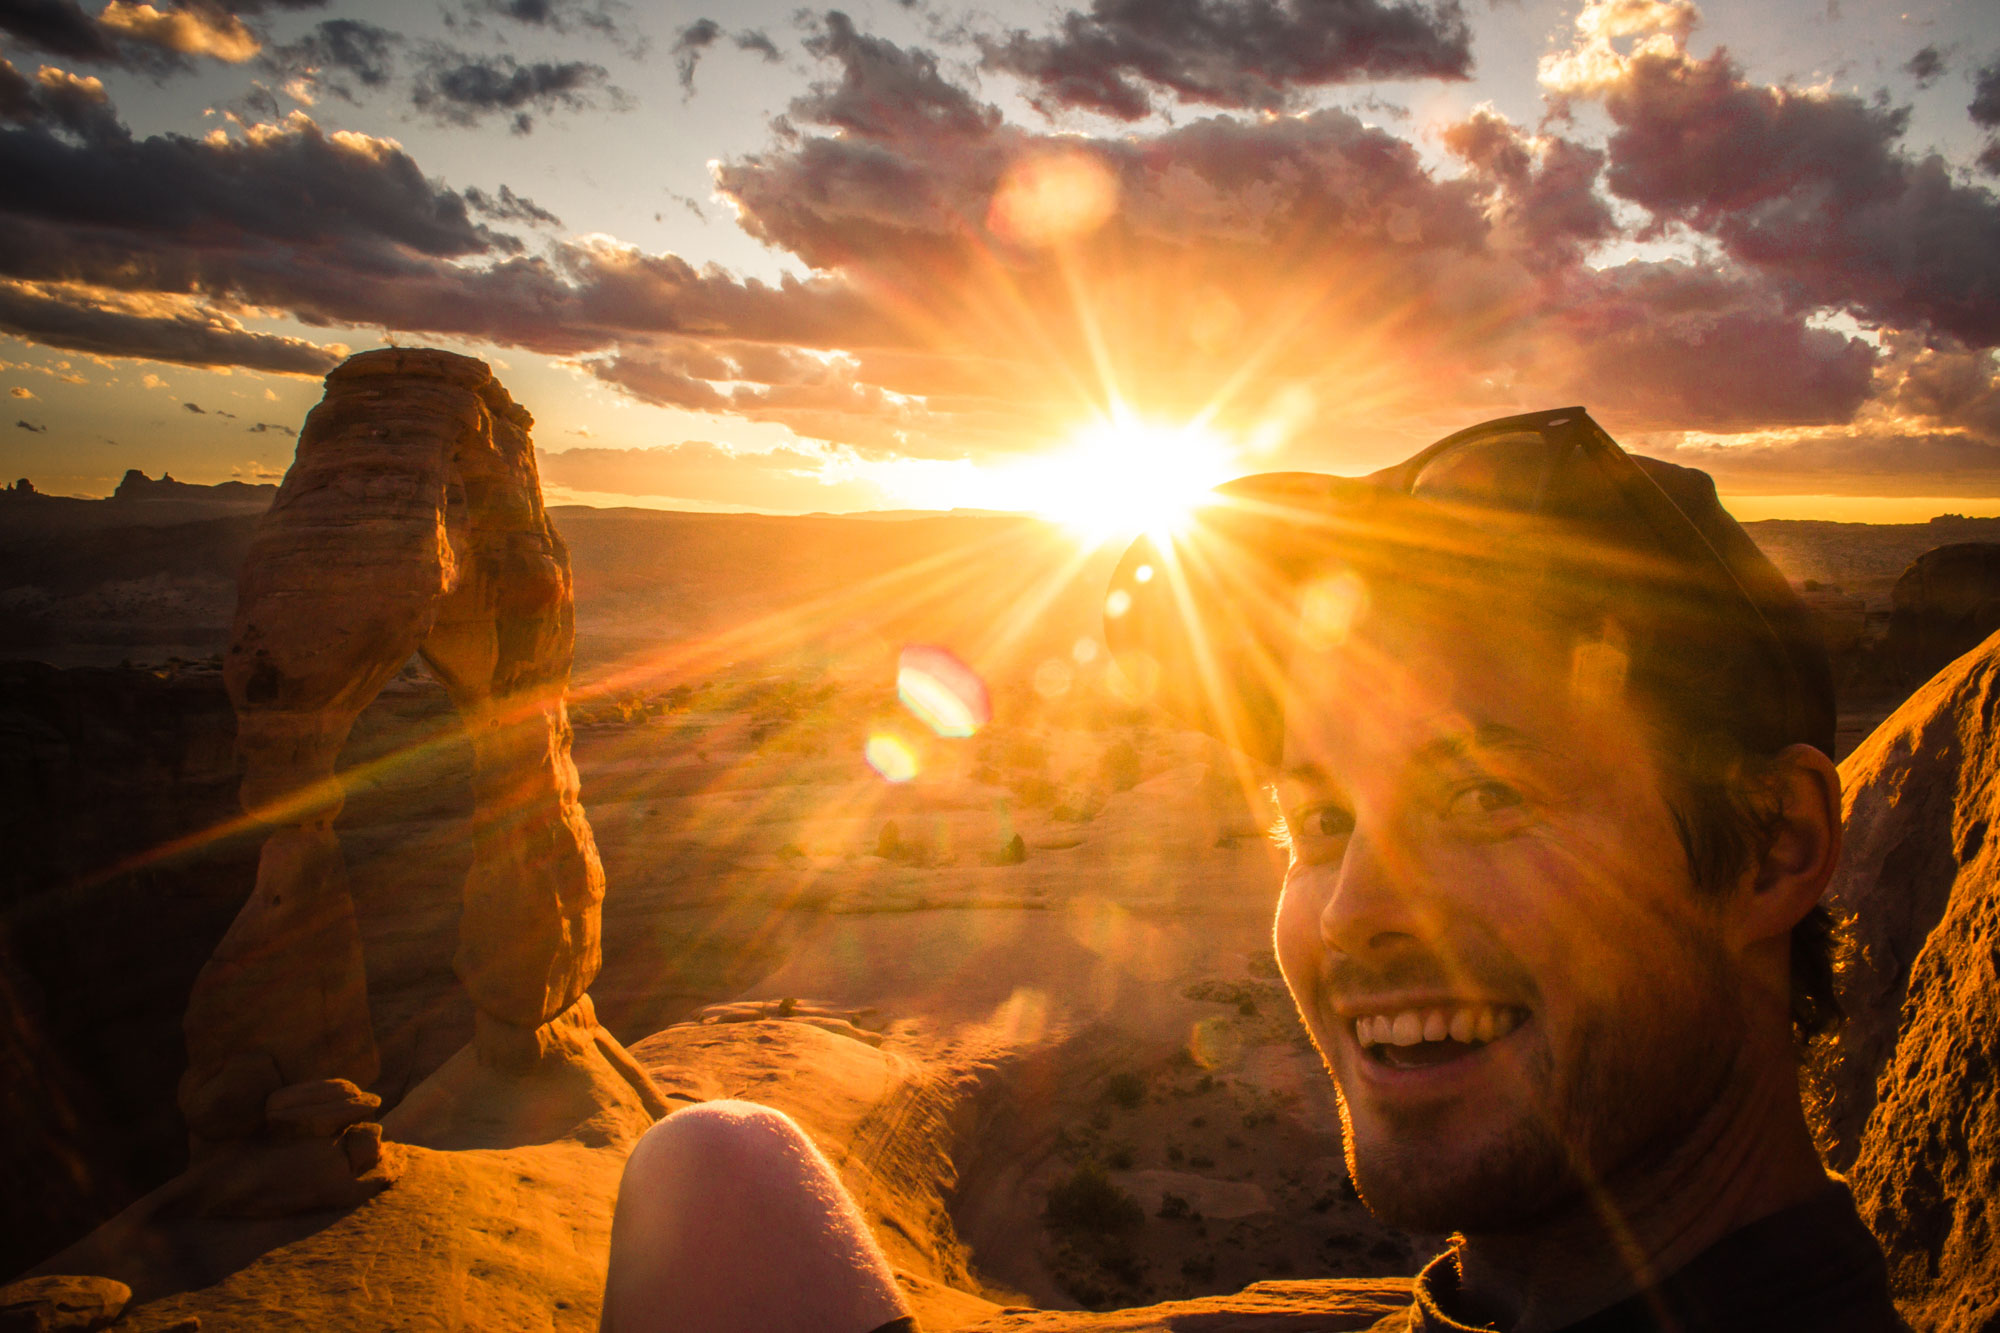 Cal Sunset at Delicate Arch, Arches National Park